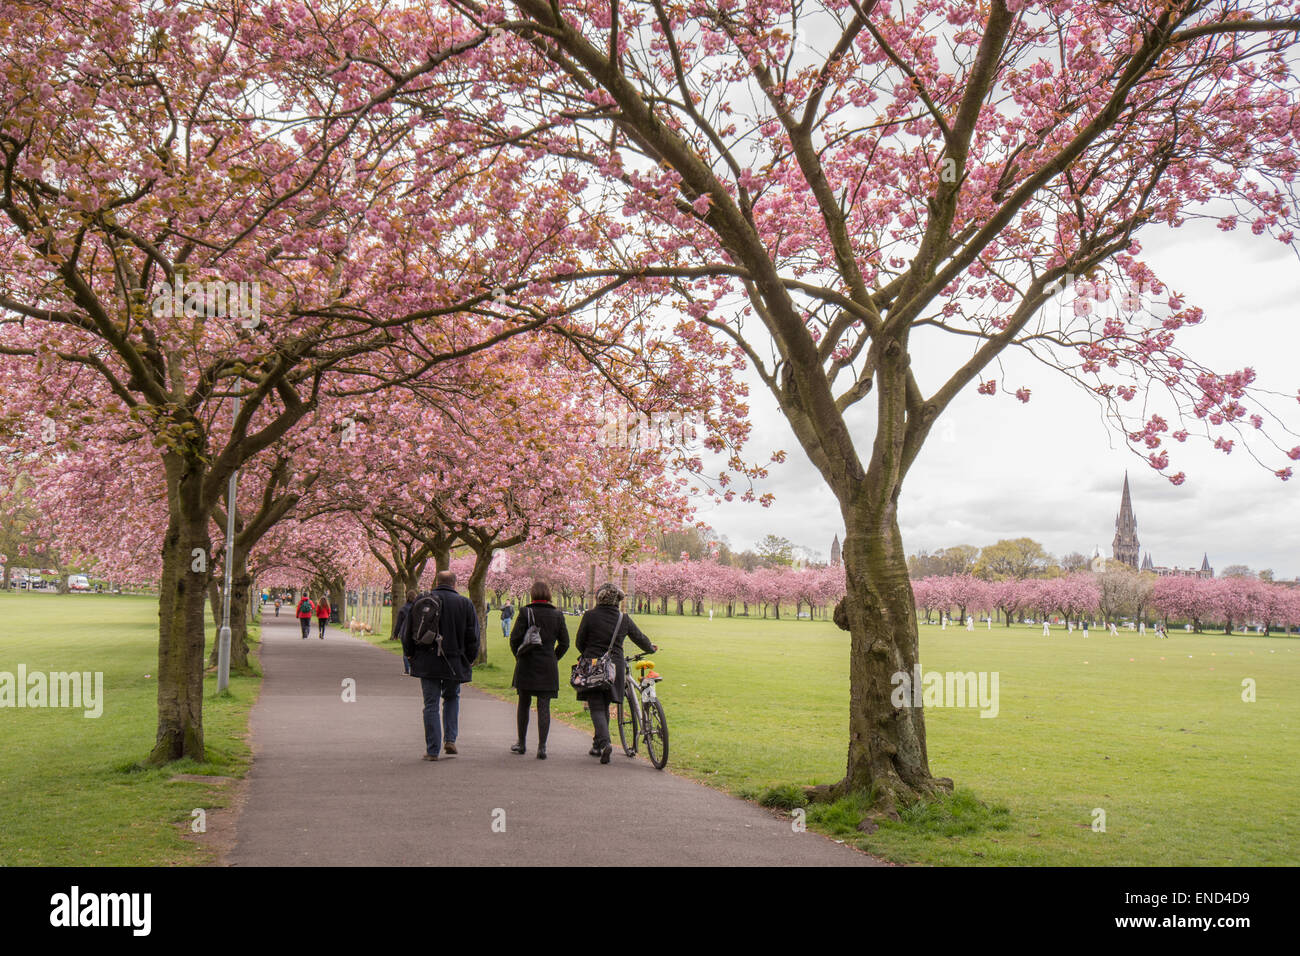 People walking through The Meadows public park in Edinburgh beneath cherry blossom trees in spring during cricket - Stock Image